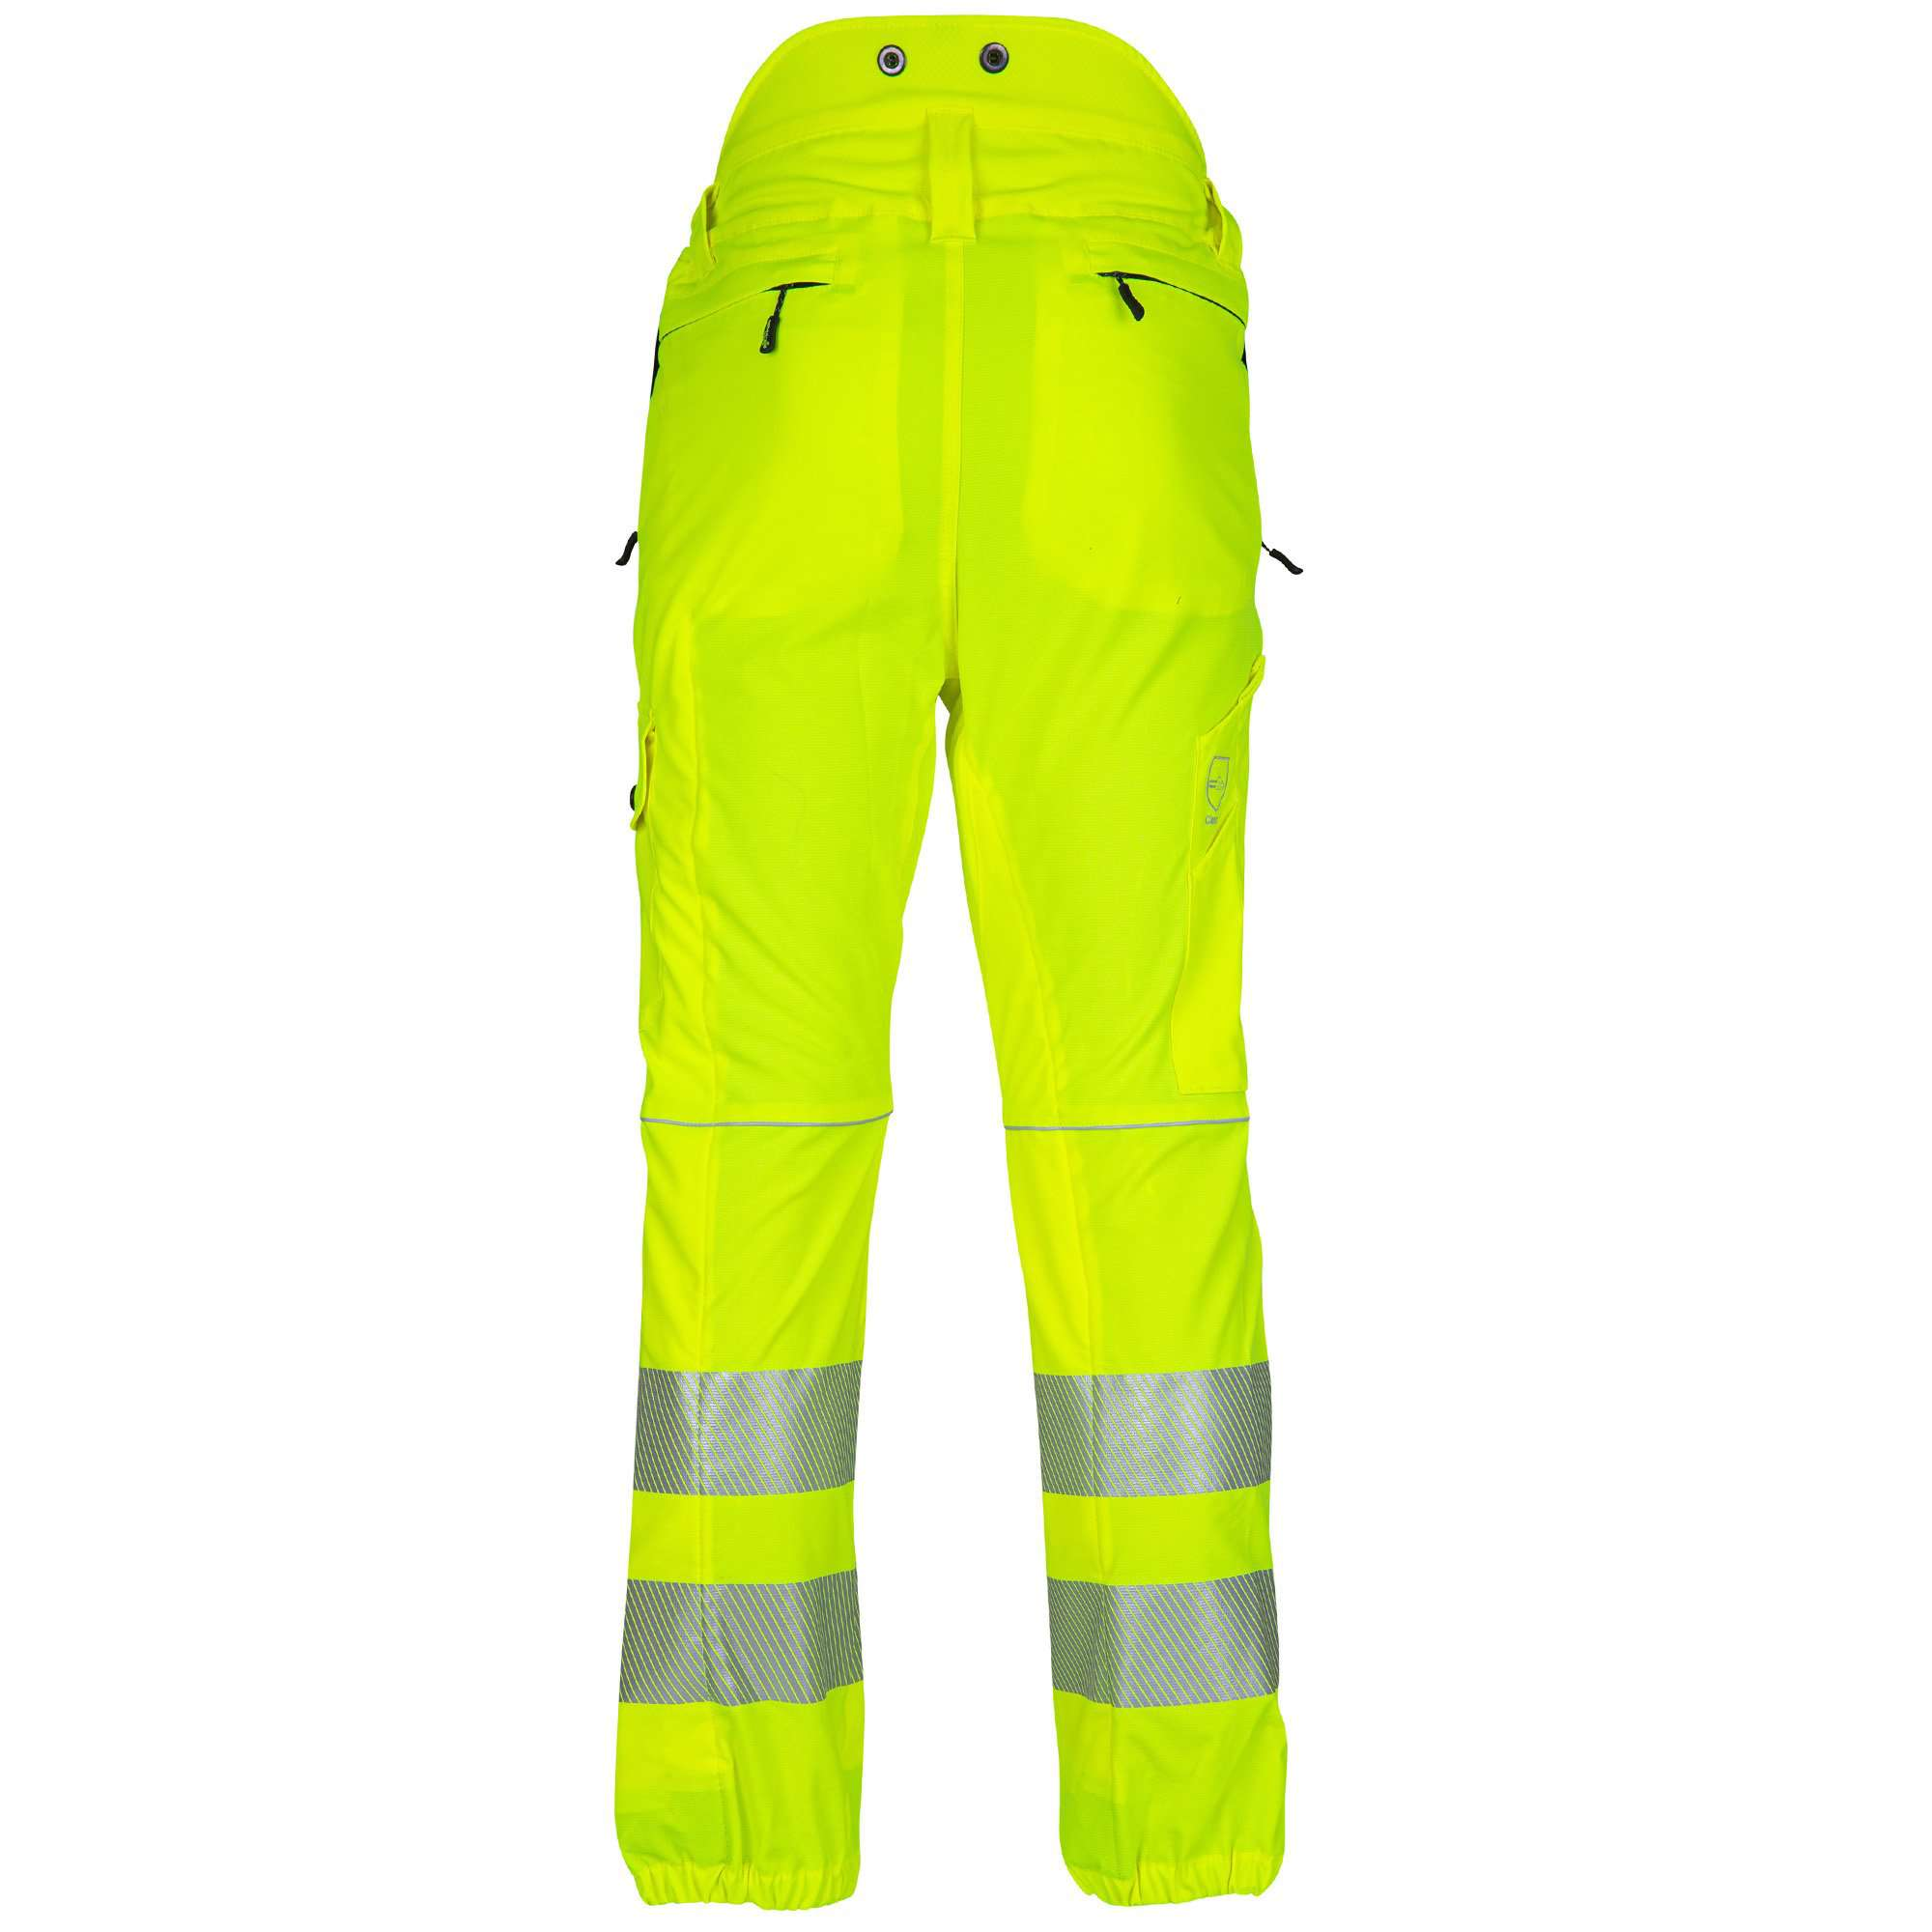 ATHV4050 Breatheflex Type C Class 1 Chainsaw Trousers - Hi-Viz Yellow